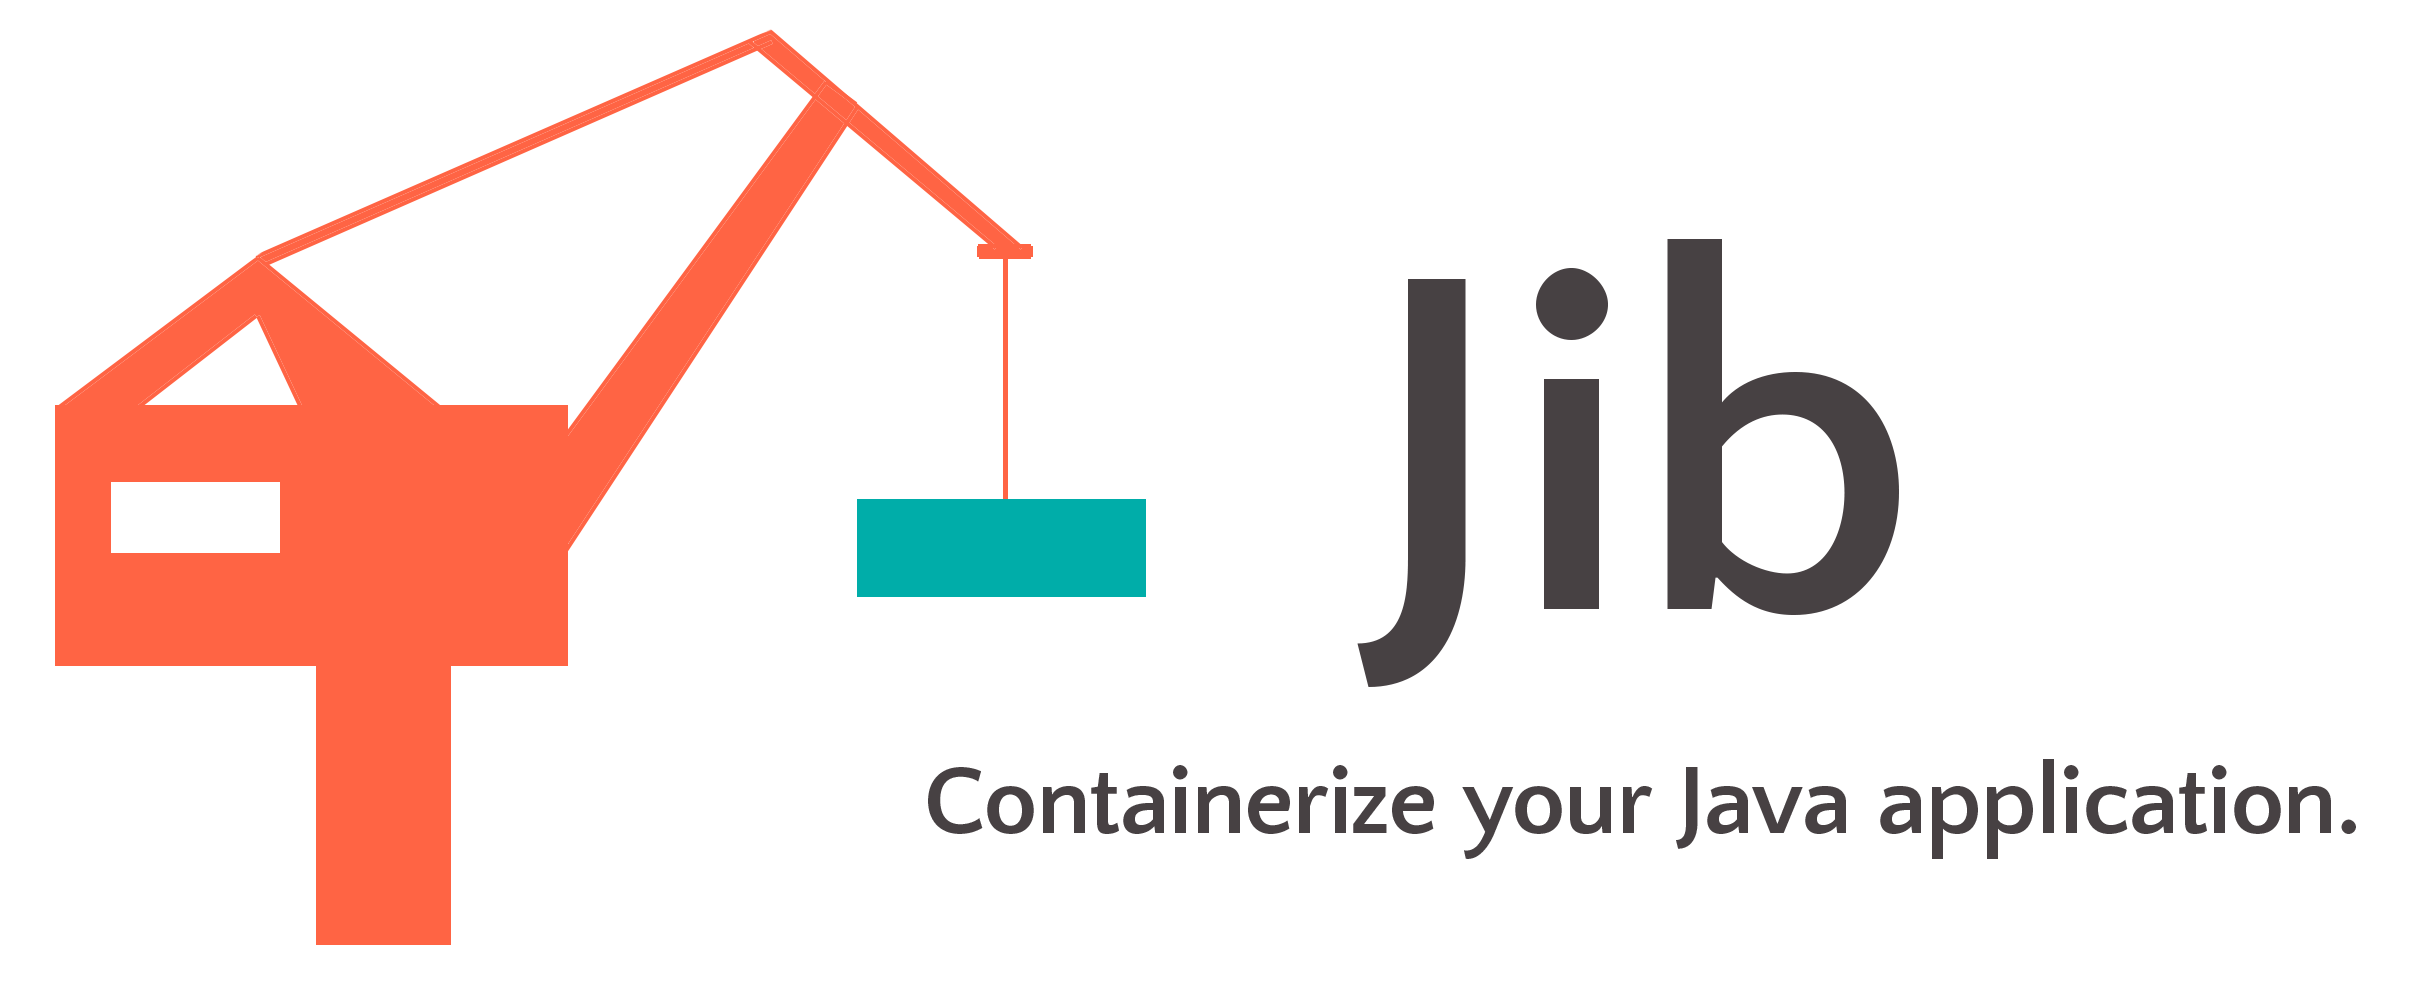 Jib - Containerize your Java application